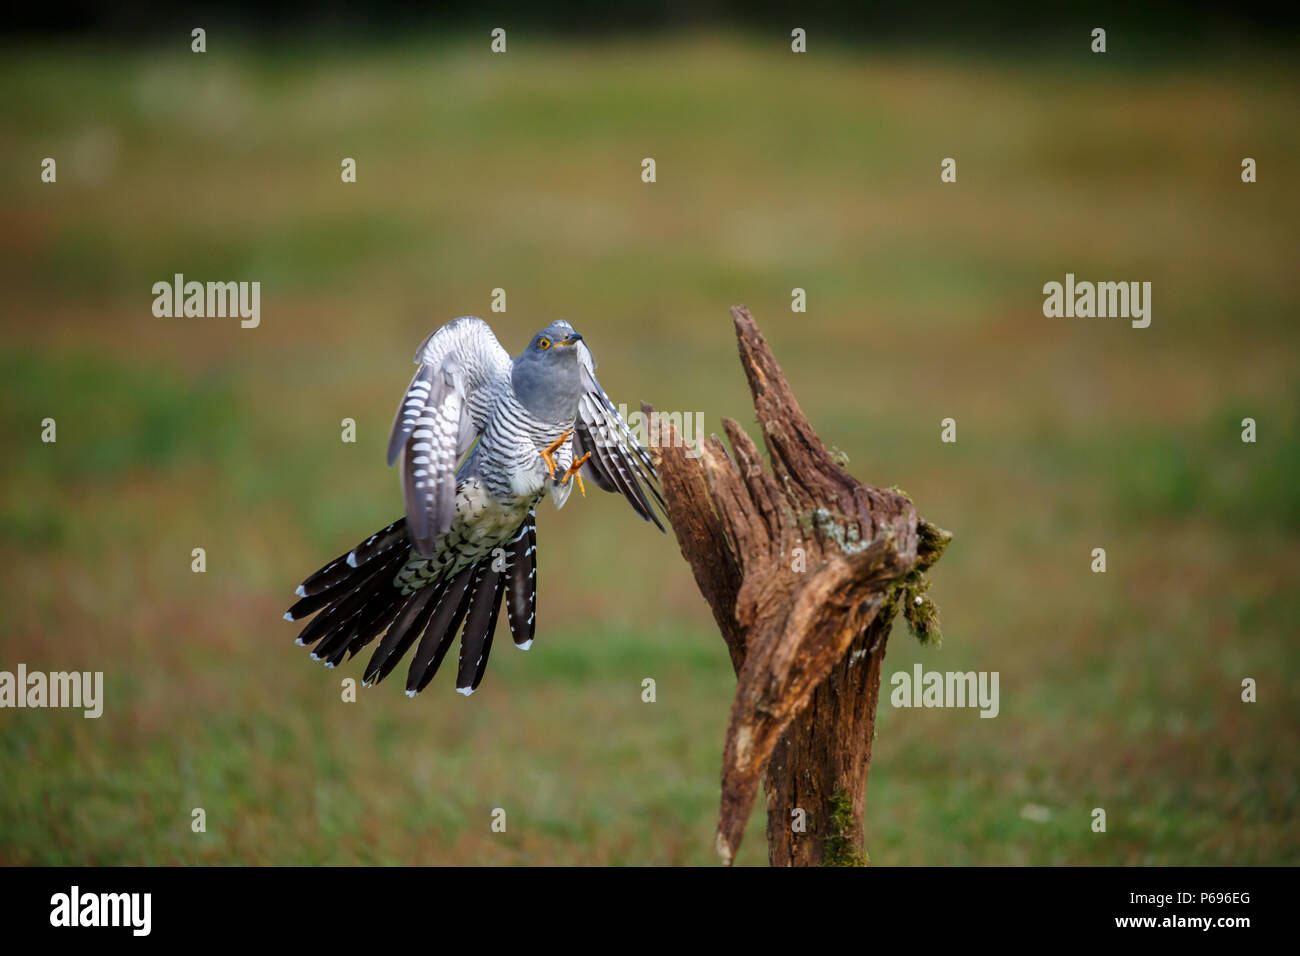 A common cuckoo coming into to land on its favourite perch - Stock Image